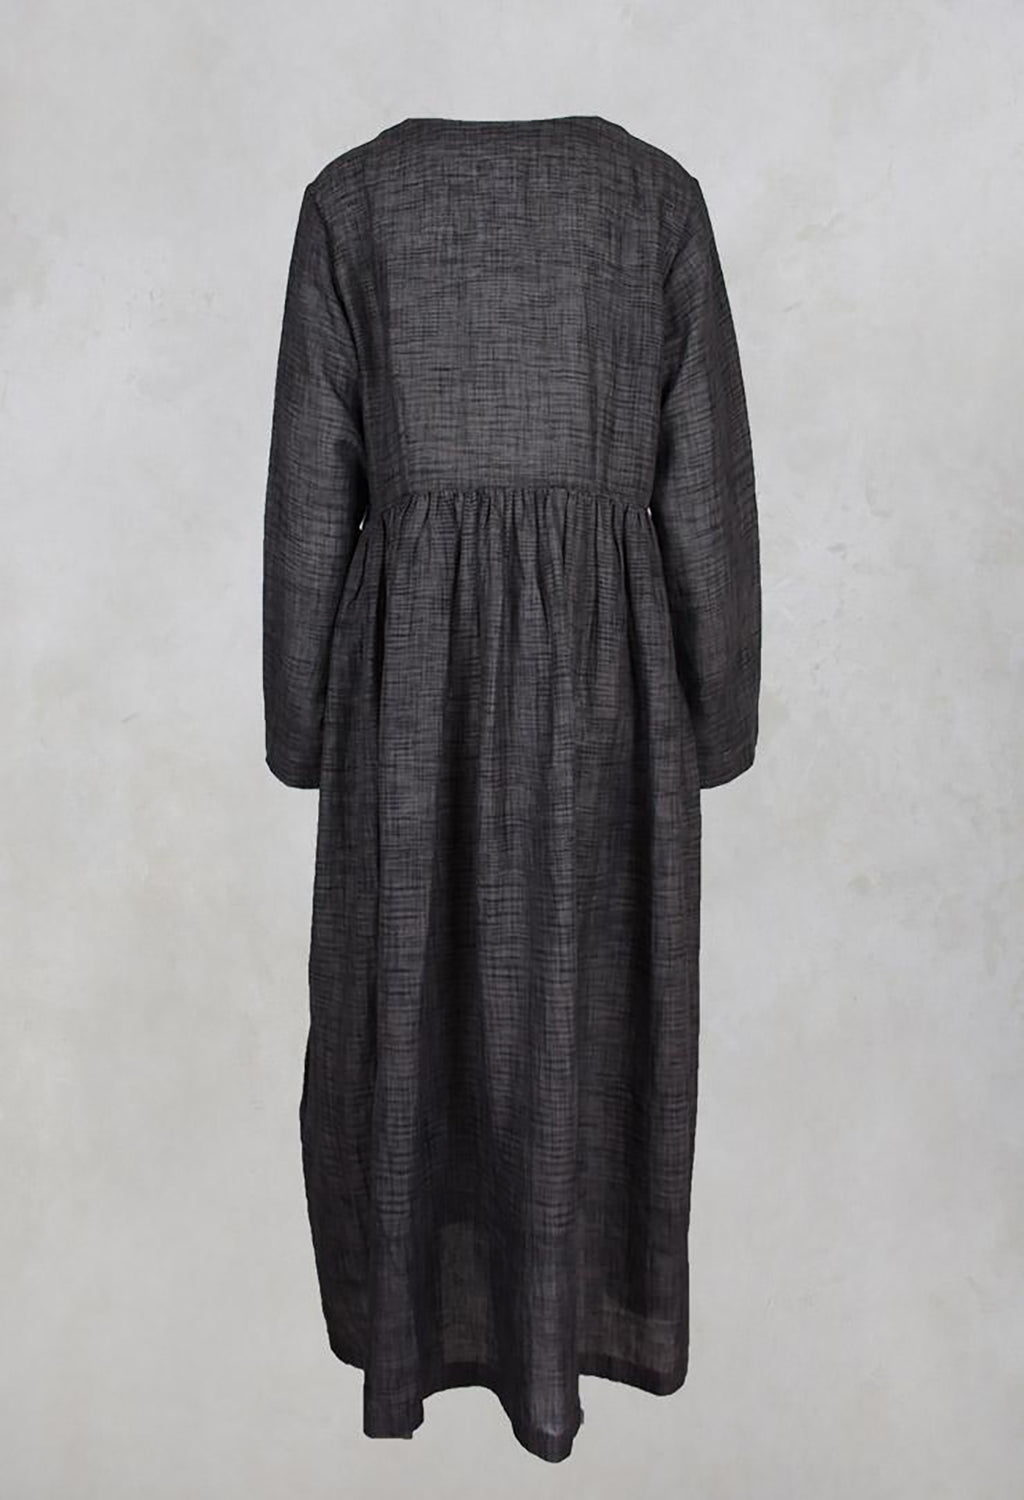 Gathered Cotton Ikkat Dress in Brown